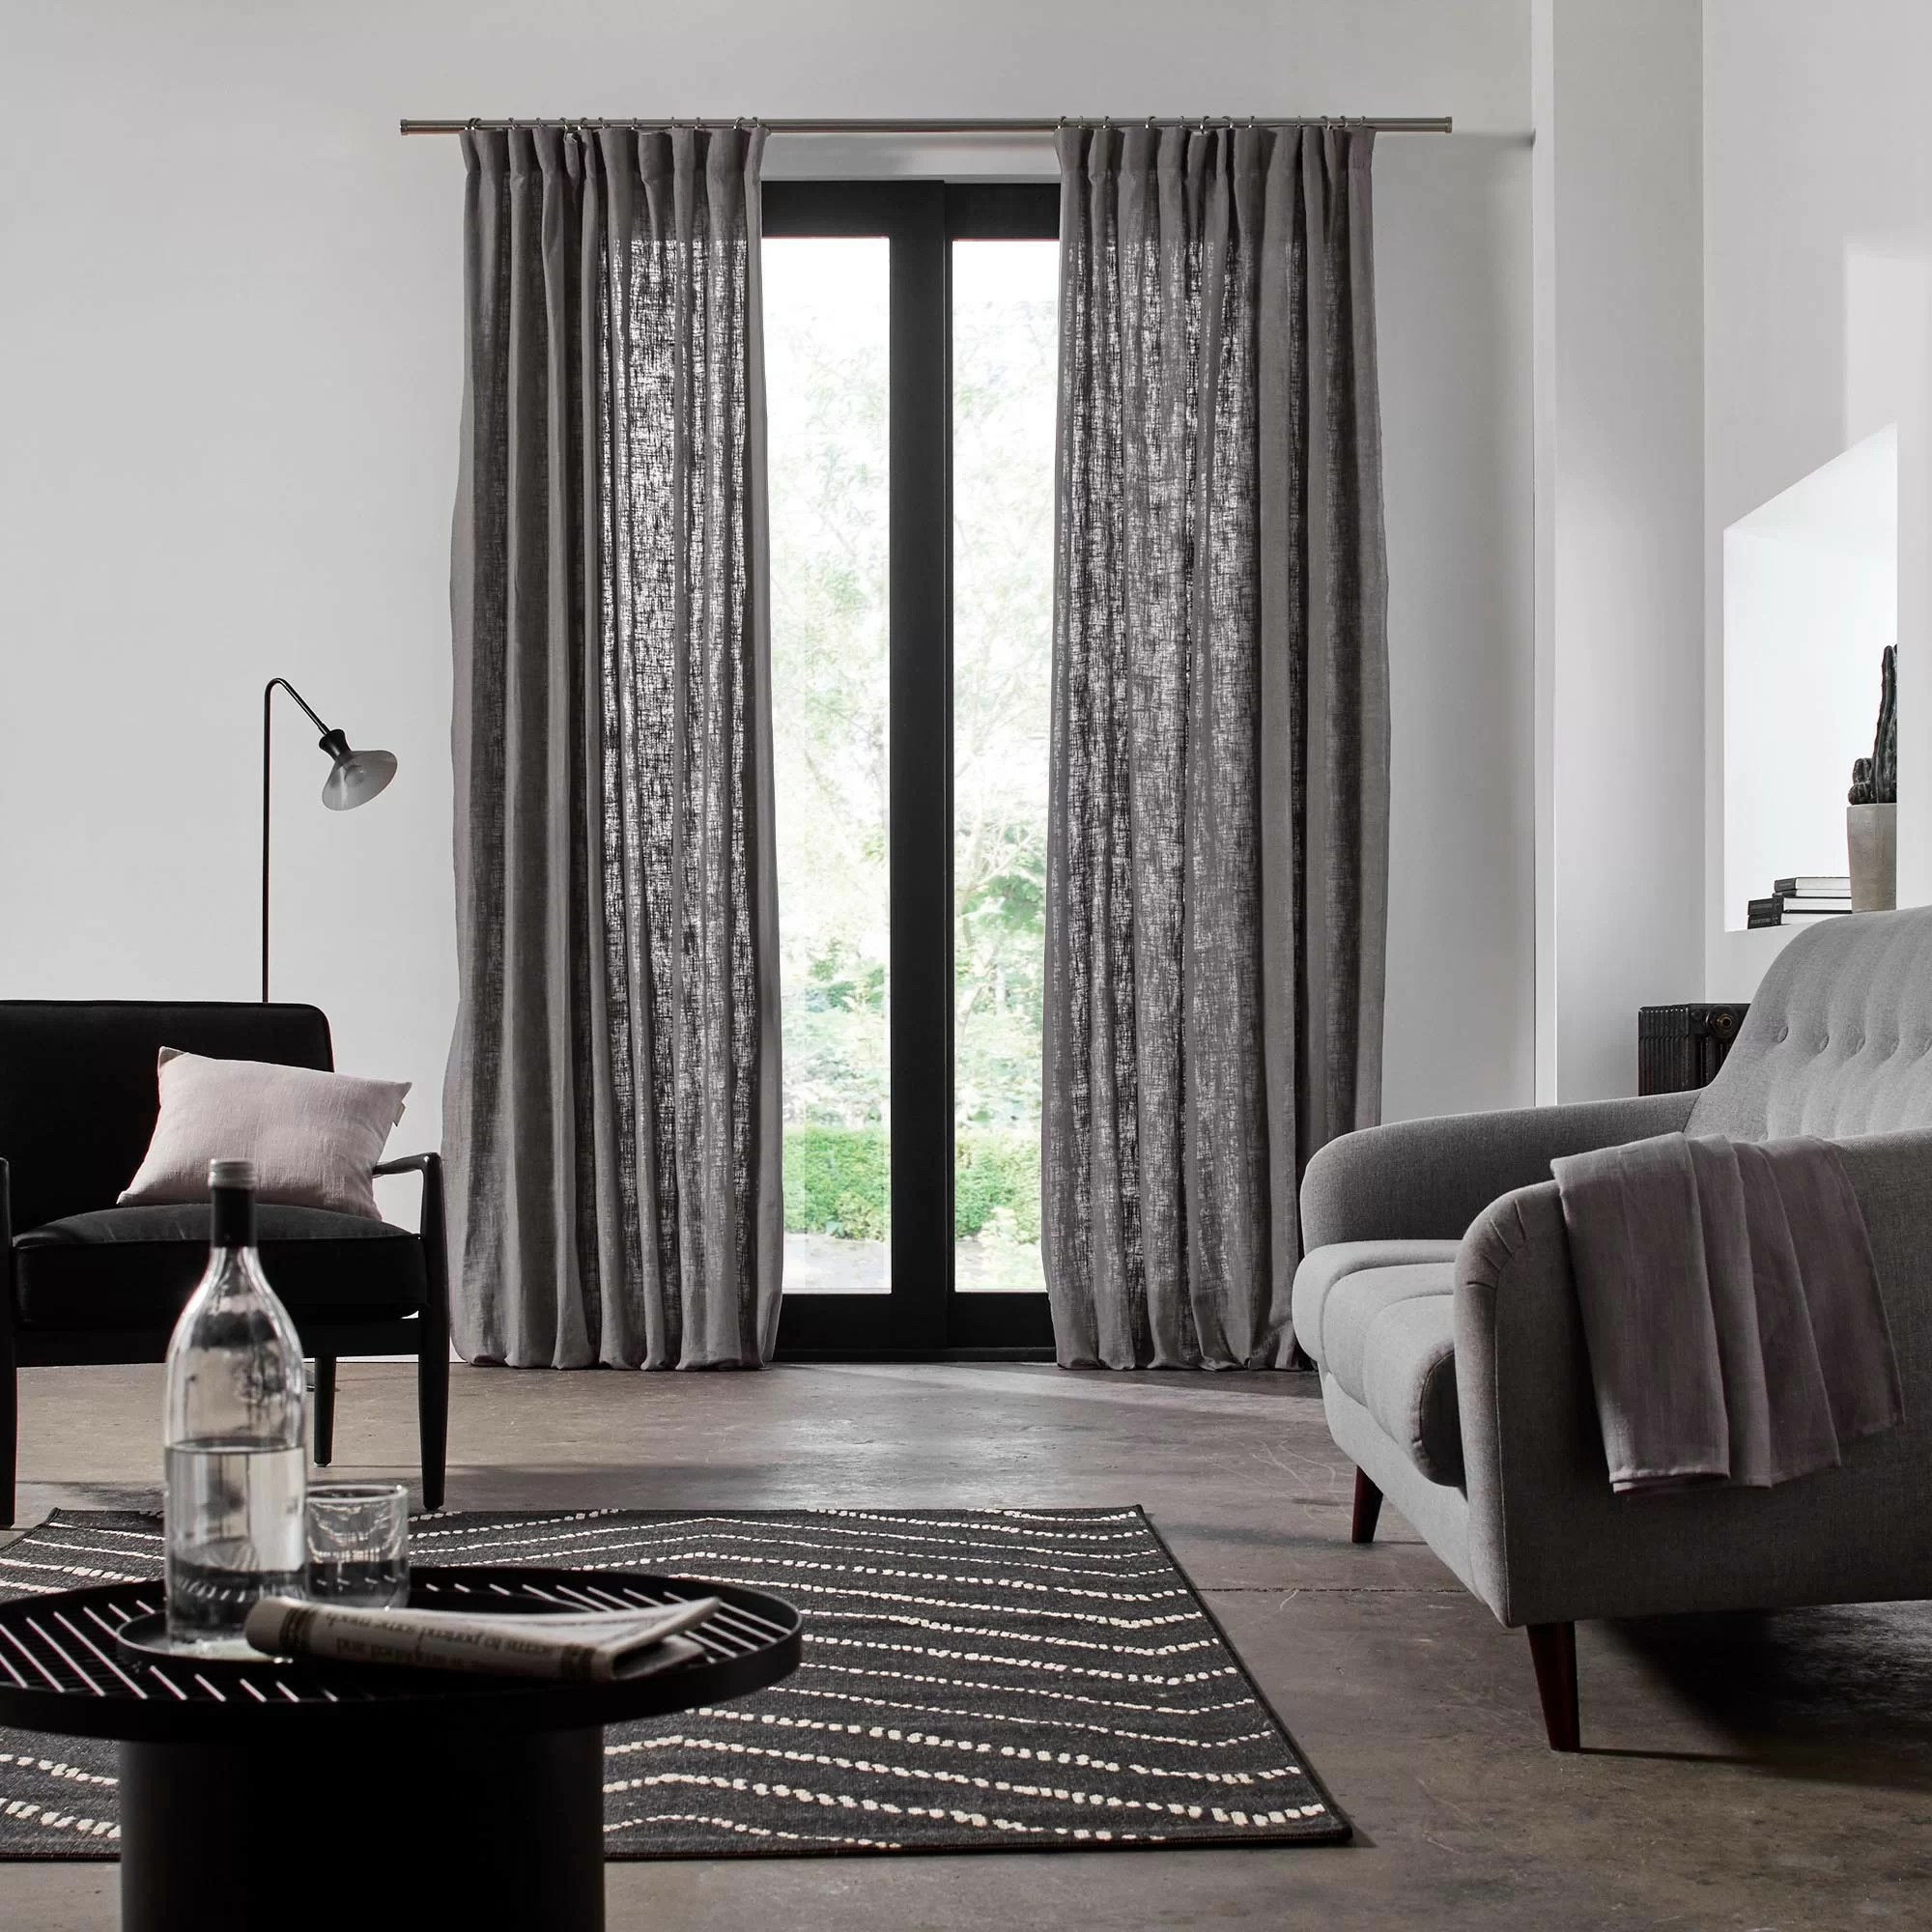 Schlafzimmer Set Bellevue Madura Bellevue Pencil Pleat Semi-sheer Single Curtain & Reviews | Wayfair.co.uk